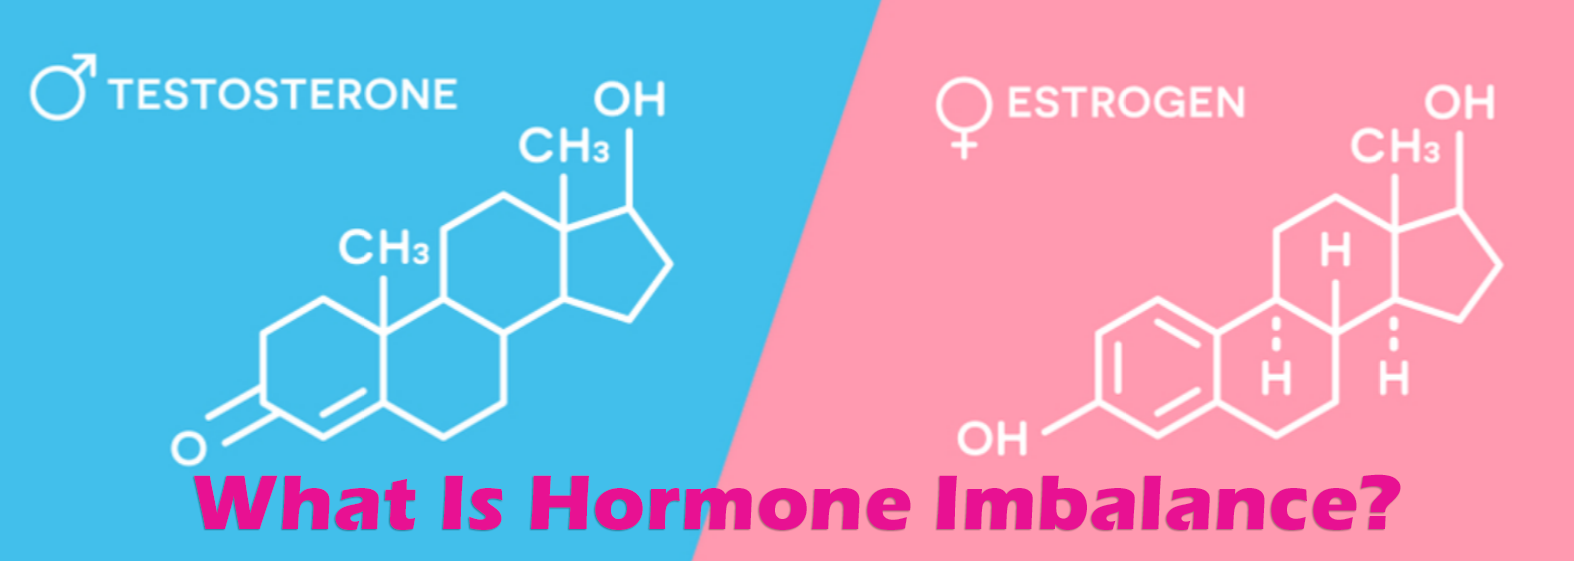 what-is-hormone-imbalance